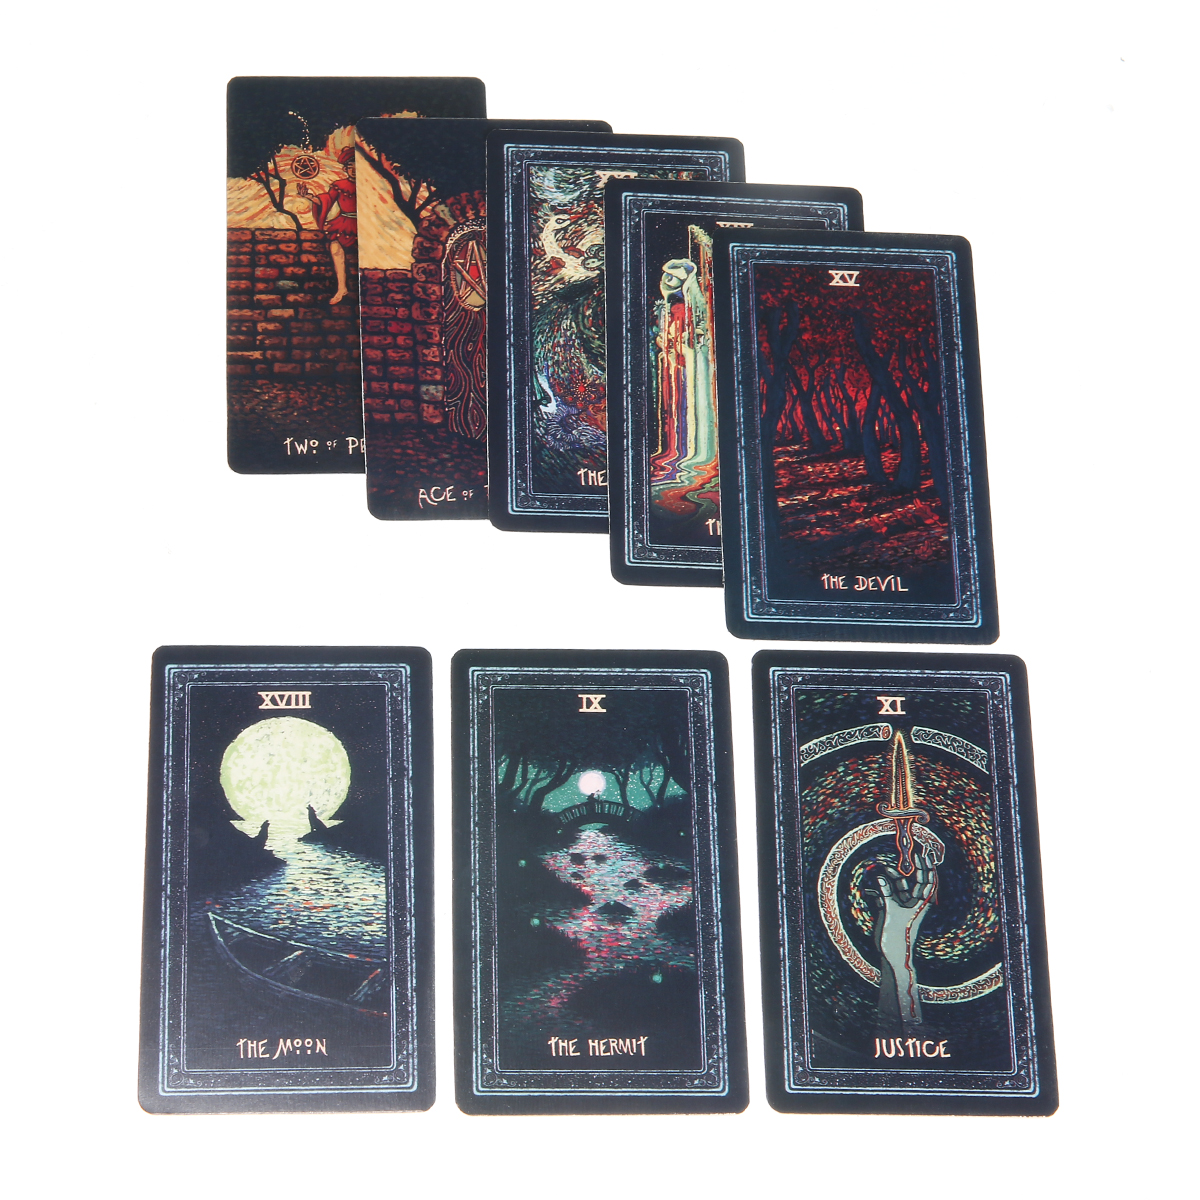 2019 Full English Deck Tarot Cards DIY Silver Plating Prisma Visions Tarot High Quality Tarot Deck Board Game Cards